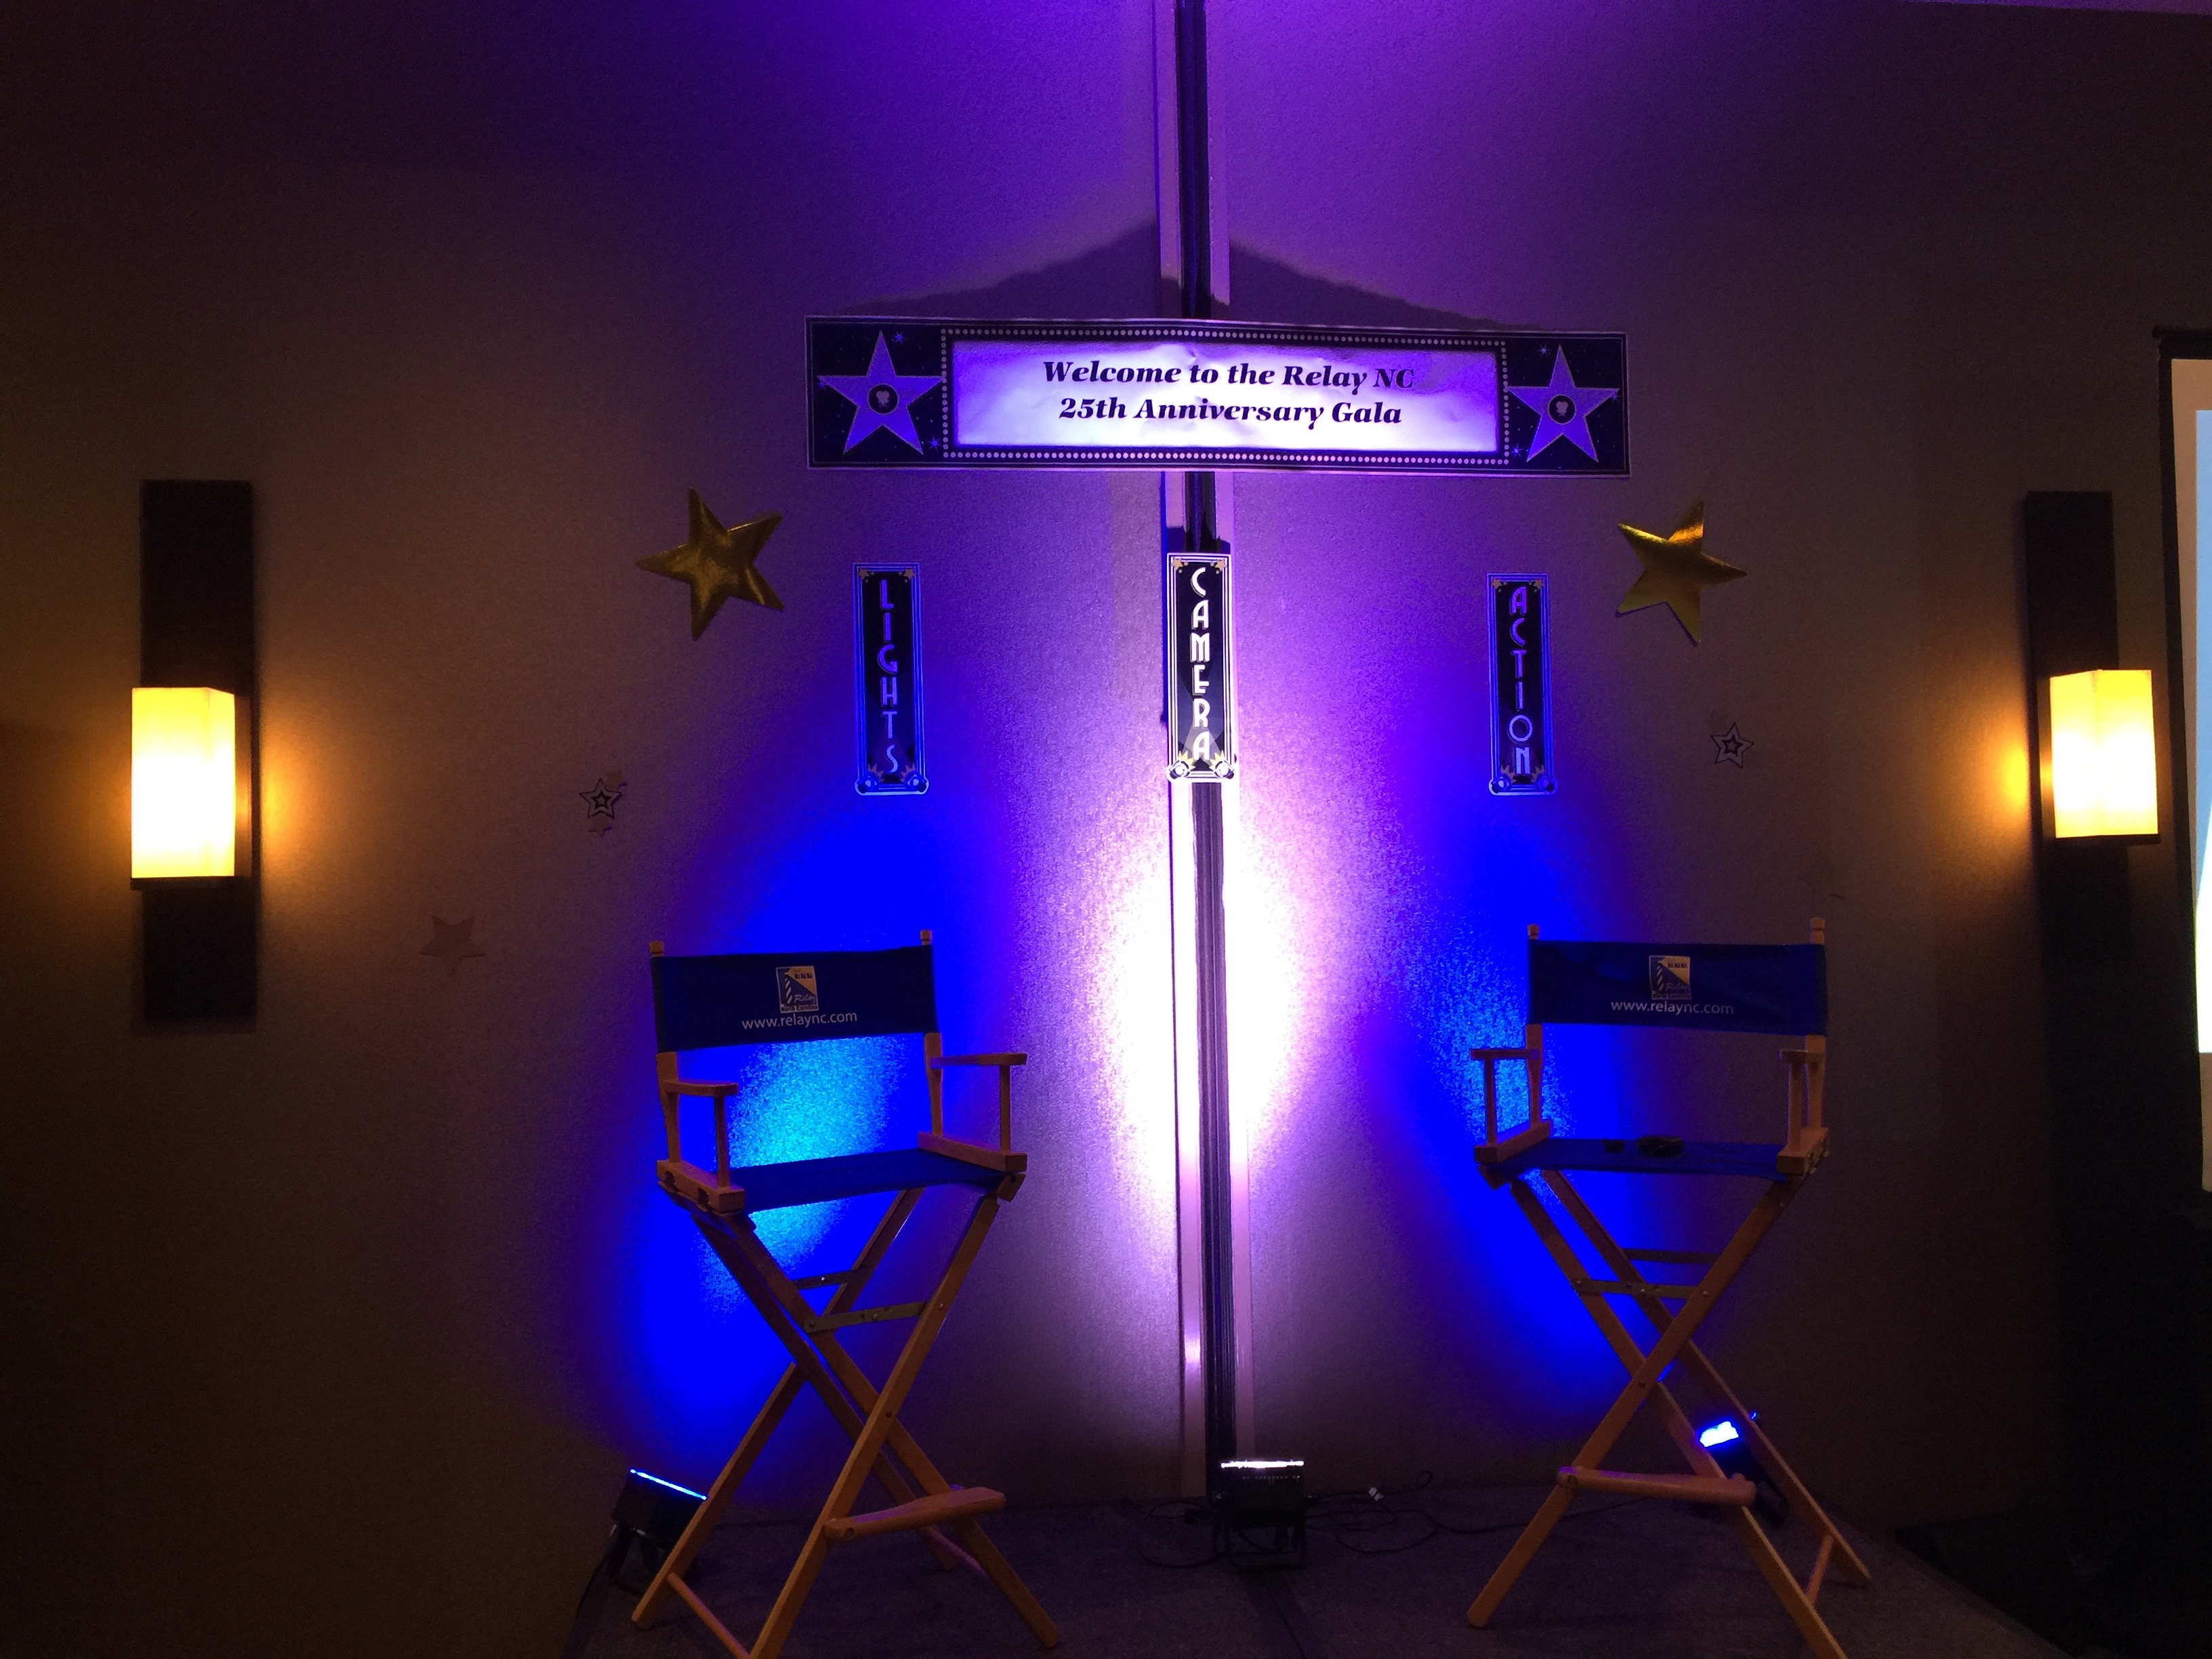 """In a dark room, on a stage, there are two director's chairs on either end with blue lights illustrating them. Above the platform is a sign that says """"Welcome to Relay NC 25th Anniversary Gala!"""" with smaller signs below that proclaiming """"Lights!"""", """"Cameras!"""", and """"Actions."""" There are also two golden stars on either side."""